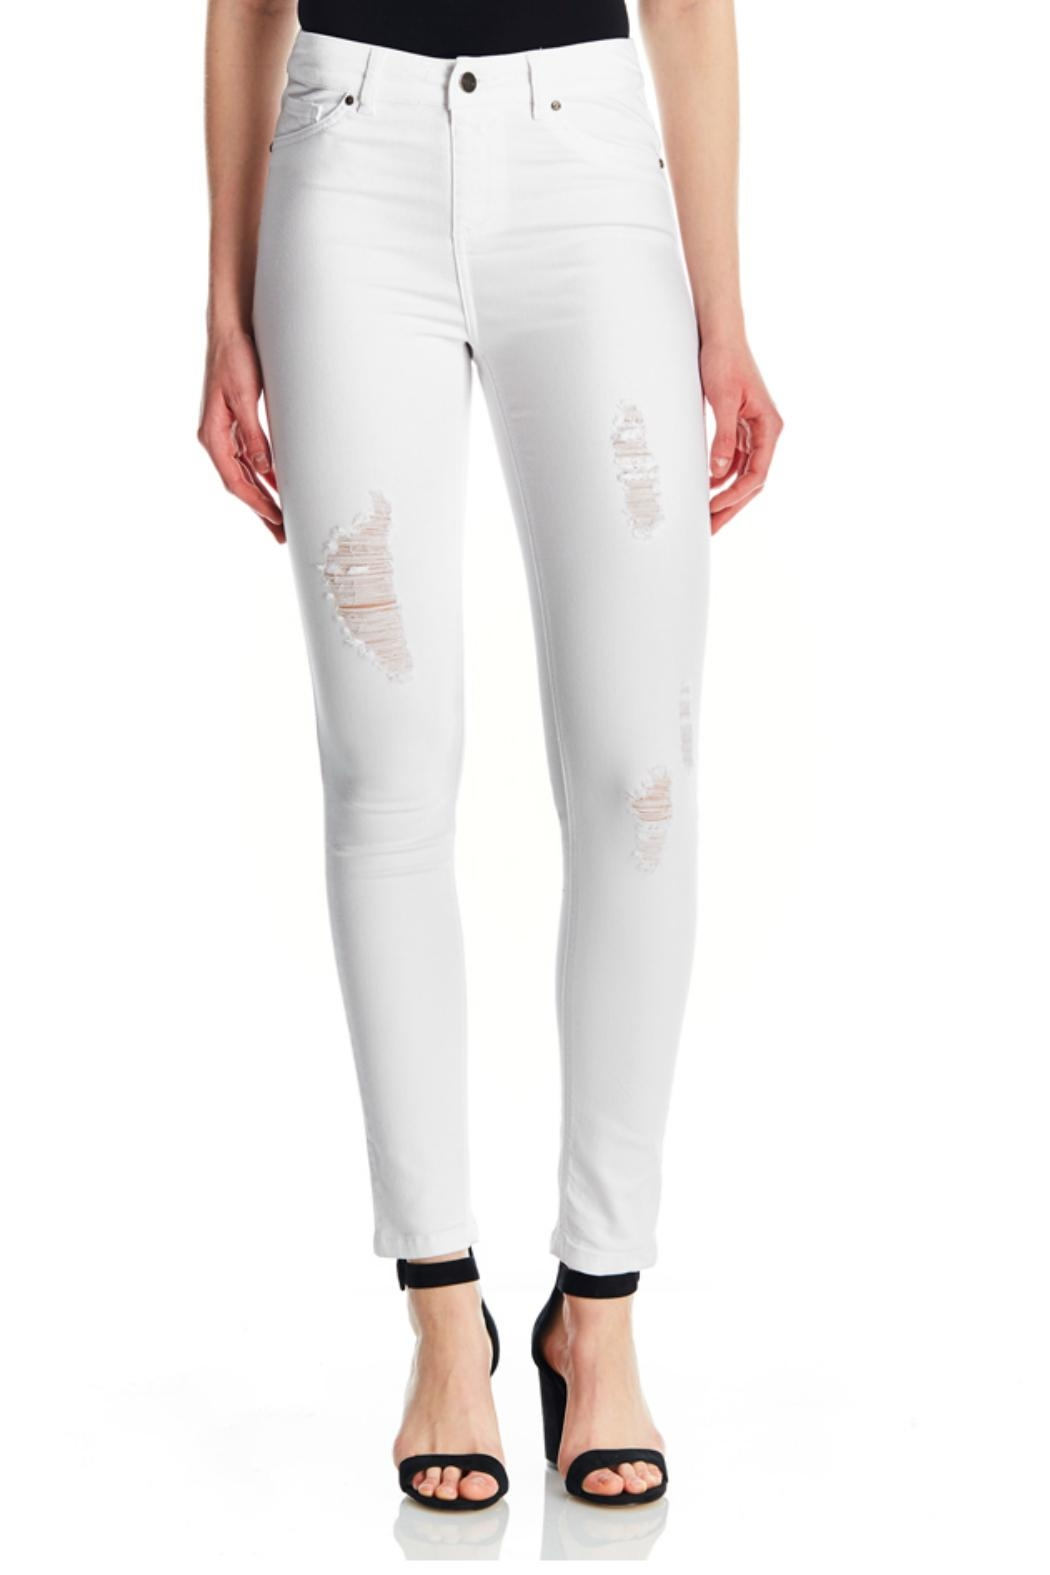 Tyler Madison White Ripped Jeans - Main Image